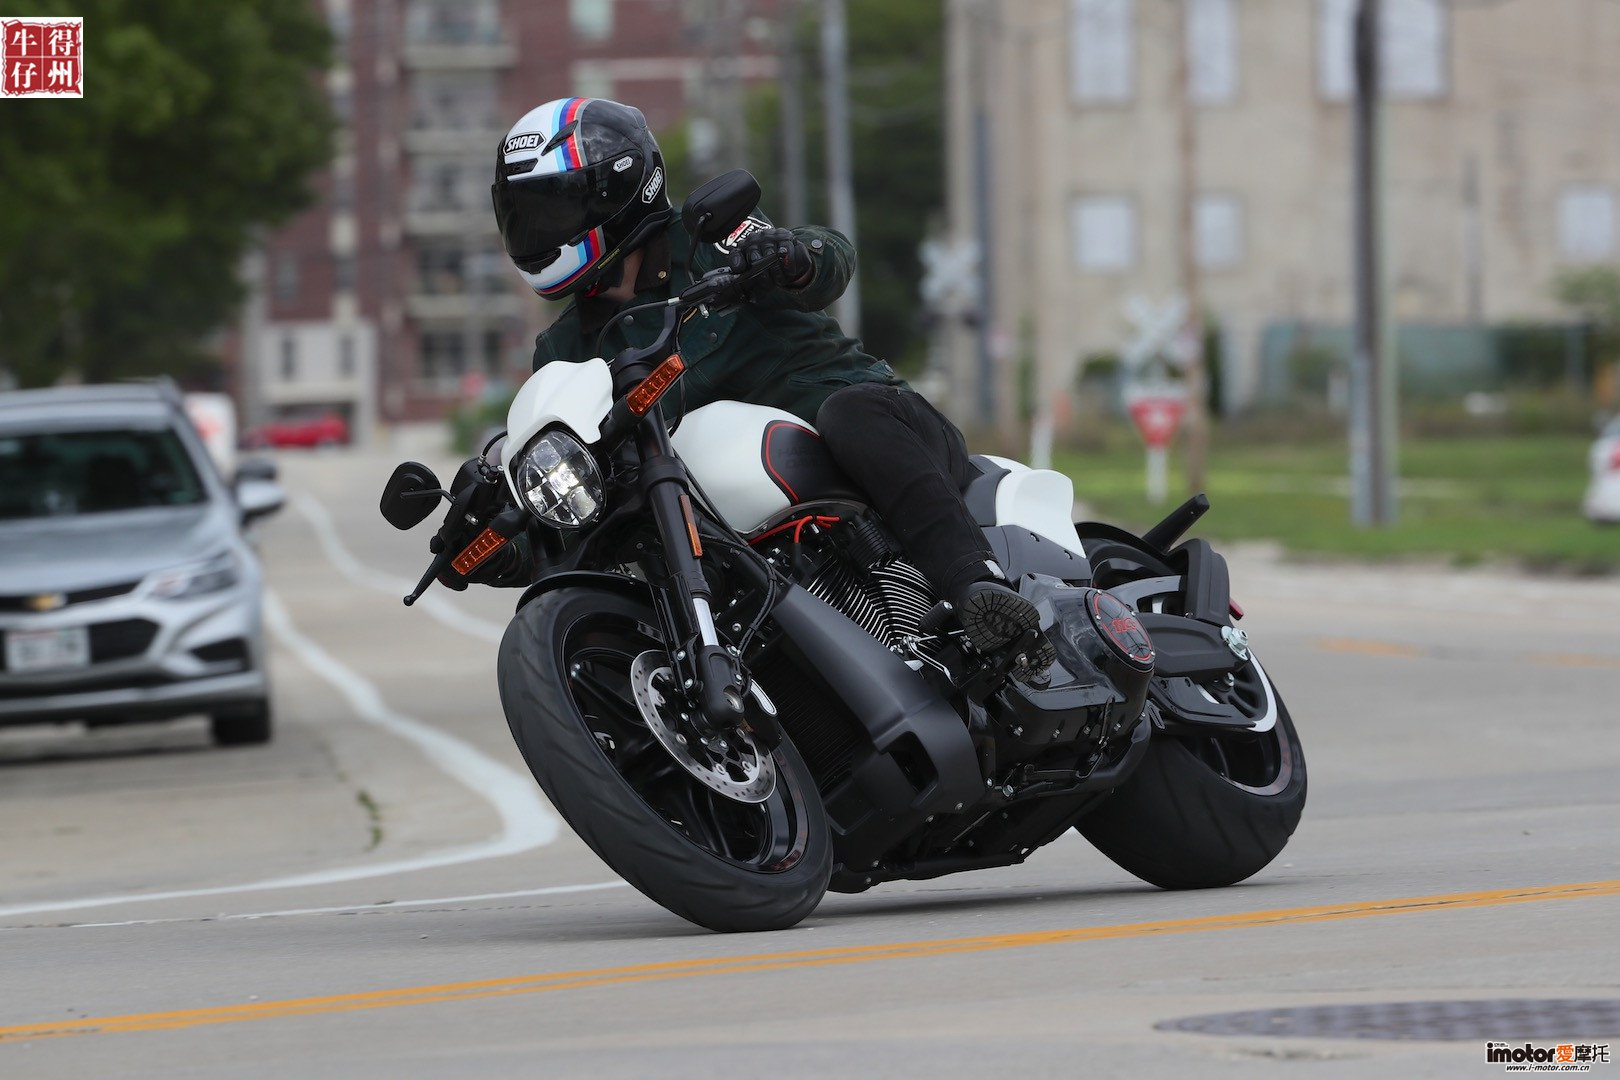 2019-Harley-Davidson-fxdr-114-review-power-cruiser-motorcycle-8.jpg